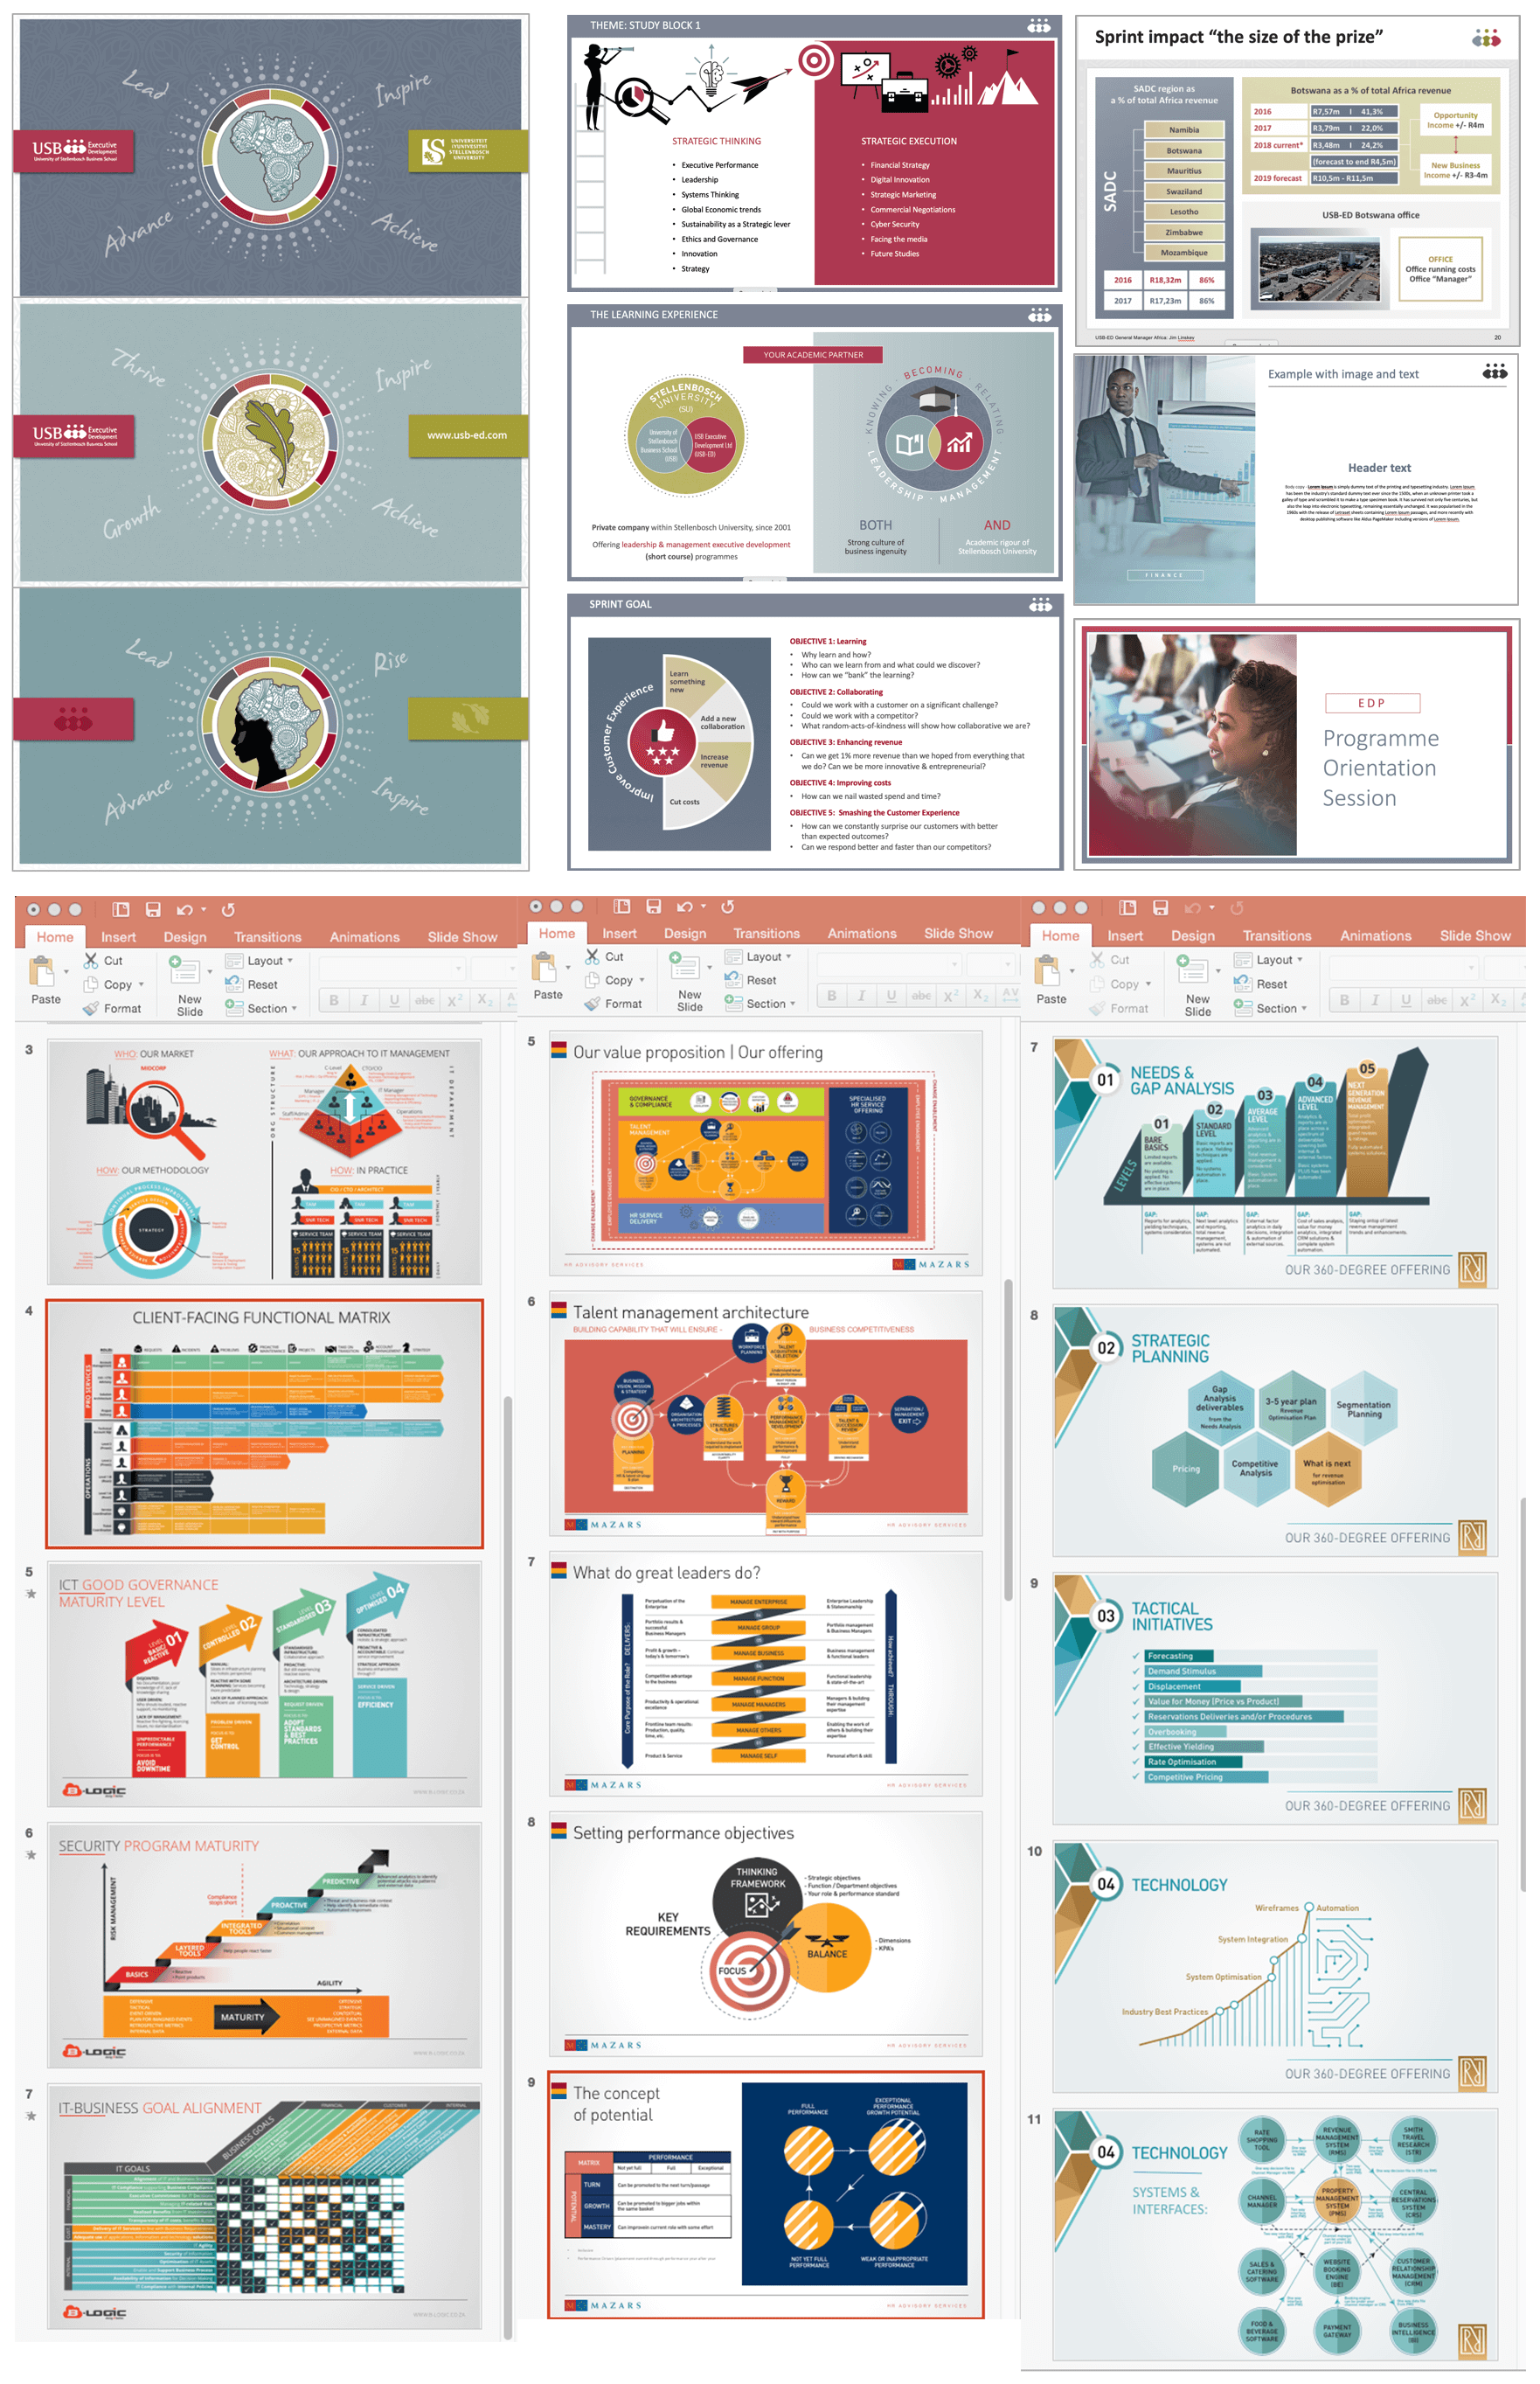 Powerpoint Slide Decks: Samples from various clients - used